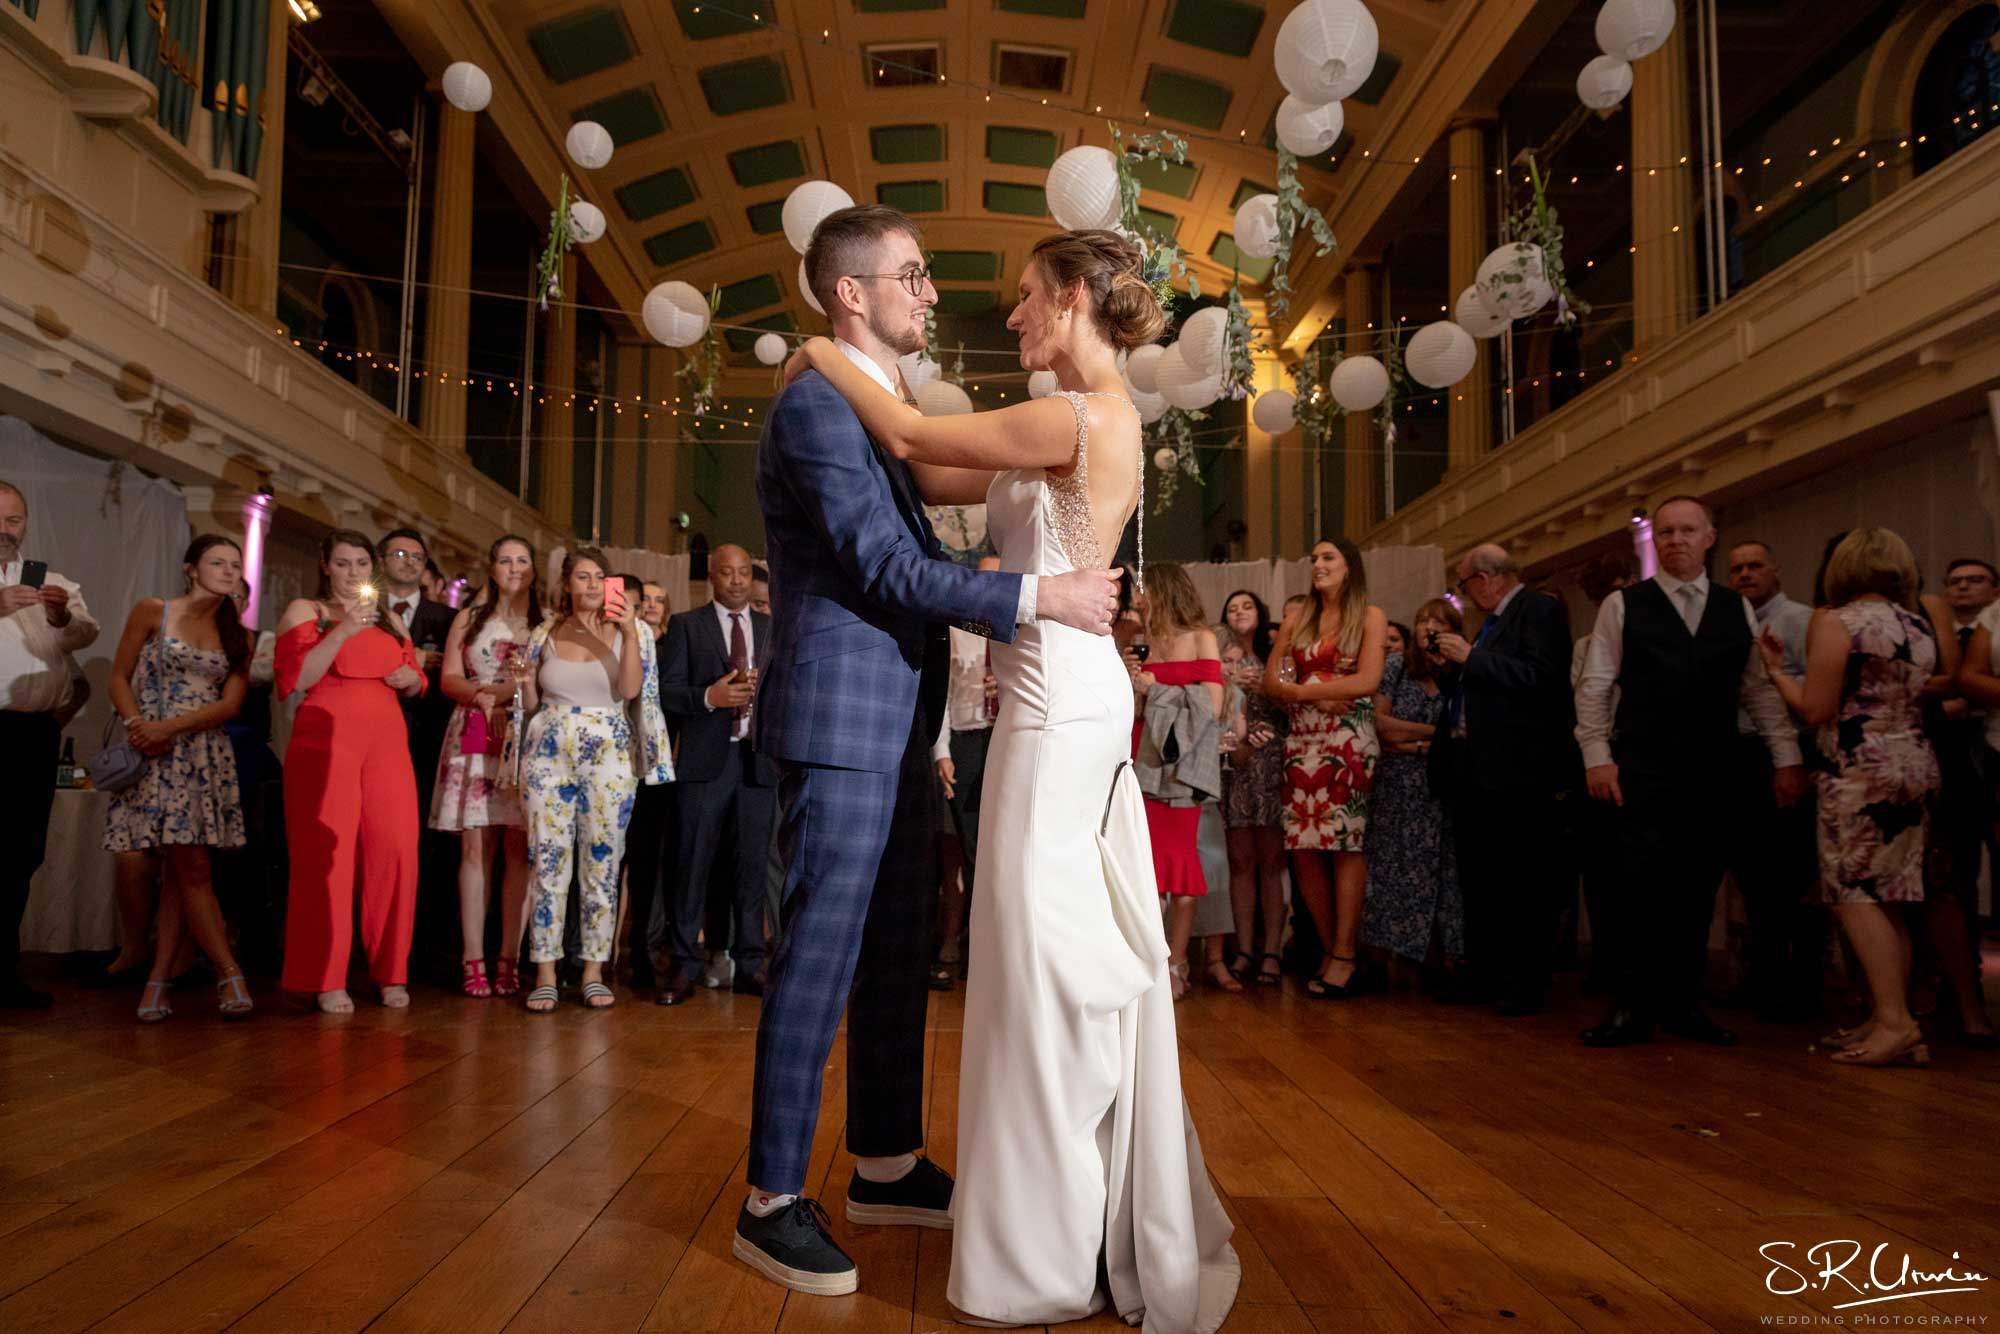 Bride and groom's first dance with watching guests at St Mary's Venue Hire, London